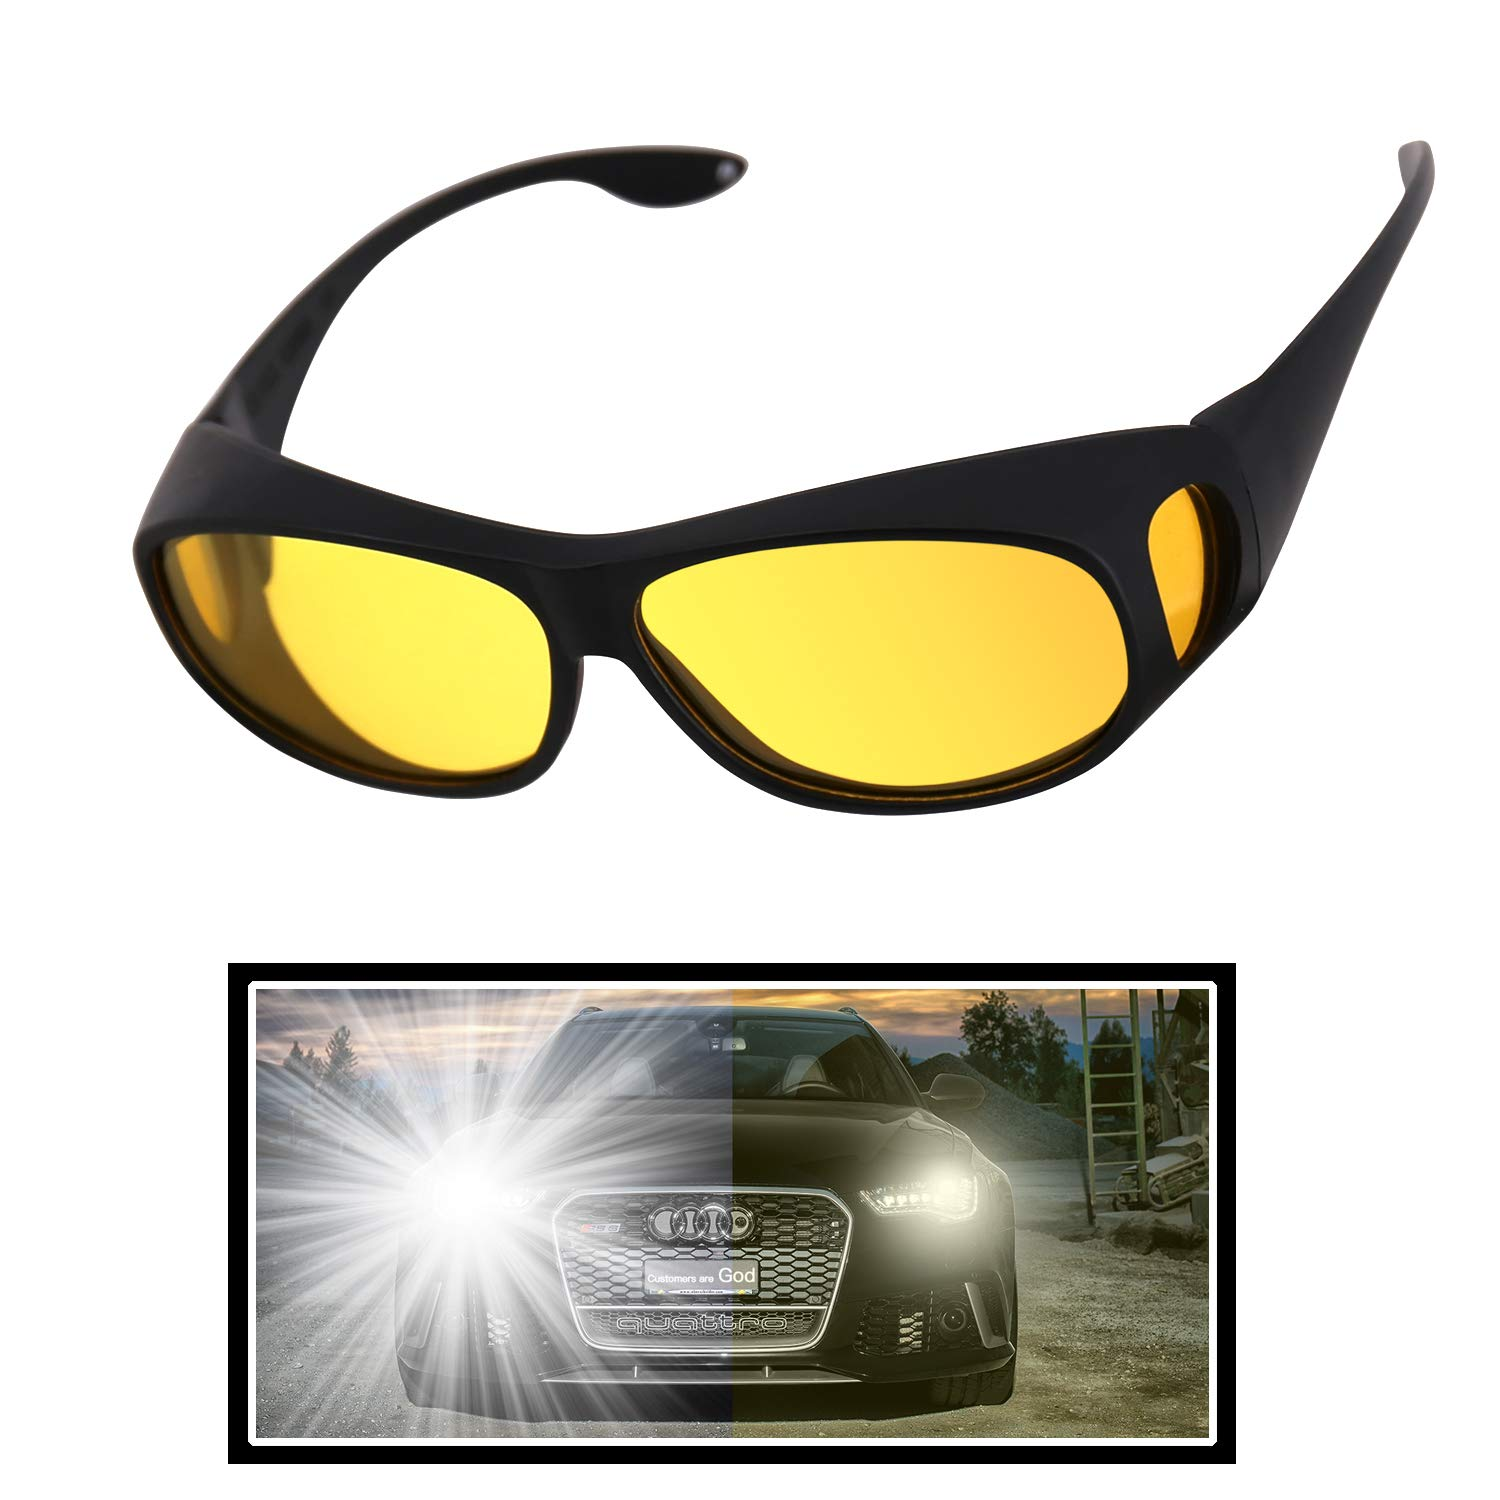 GLTECK Night Driving Glasses, Anti Glare Night Vision Glasses HD Polarized Yellow Tint Fit Over Wrap Around Prescription Eyewear for Men Women by GLTECK